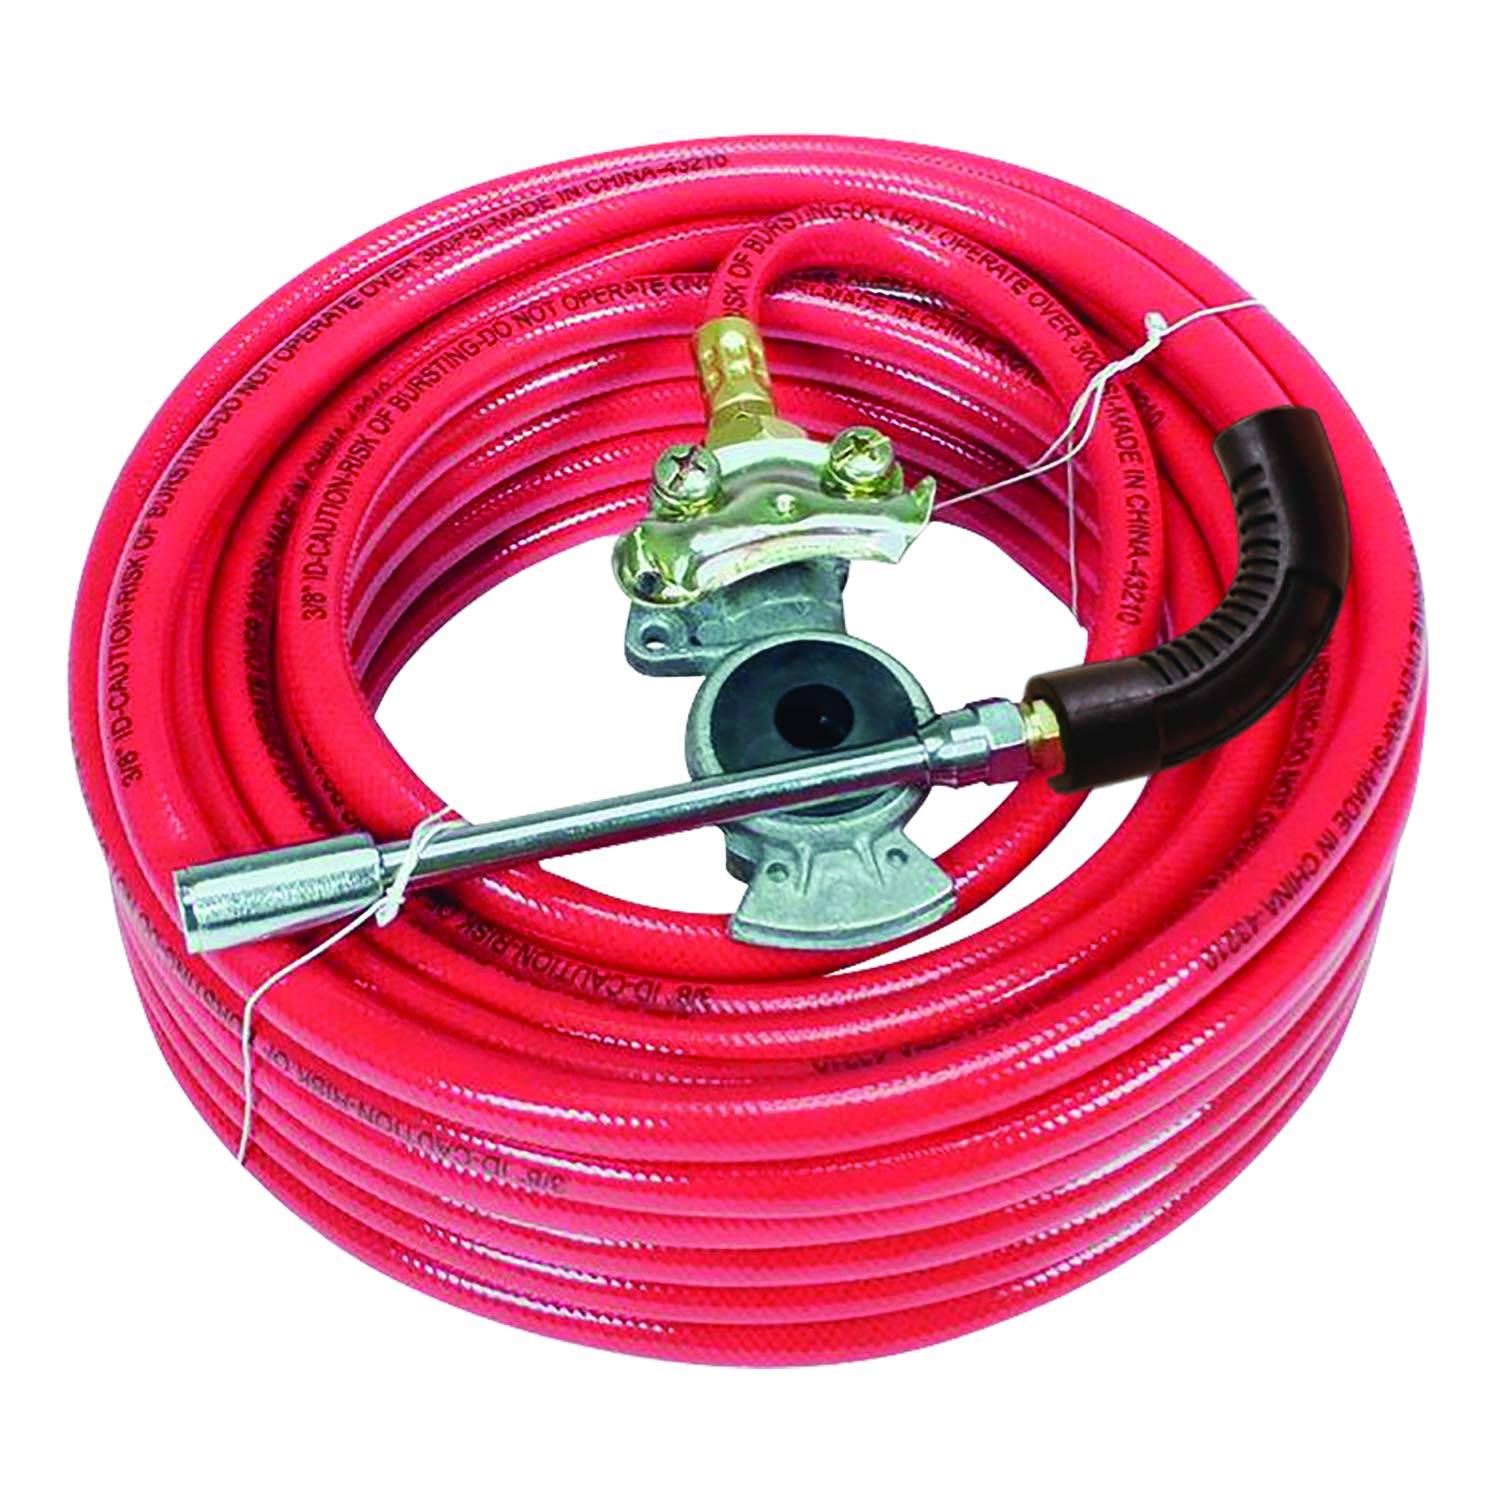 Amflo 574-50gh Heavy Duty Truck Inflator Kit for Air Brake Equipped Trucks Includes 3/8'' x 50' 300 PSI PVC Air Hose, Glad Hand, and Dual Foot Chuck